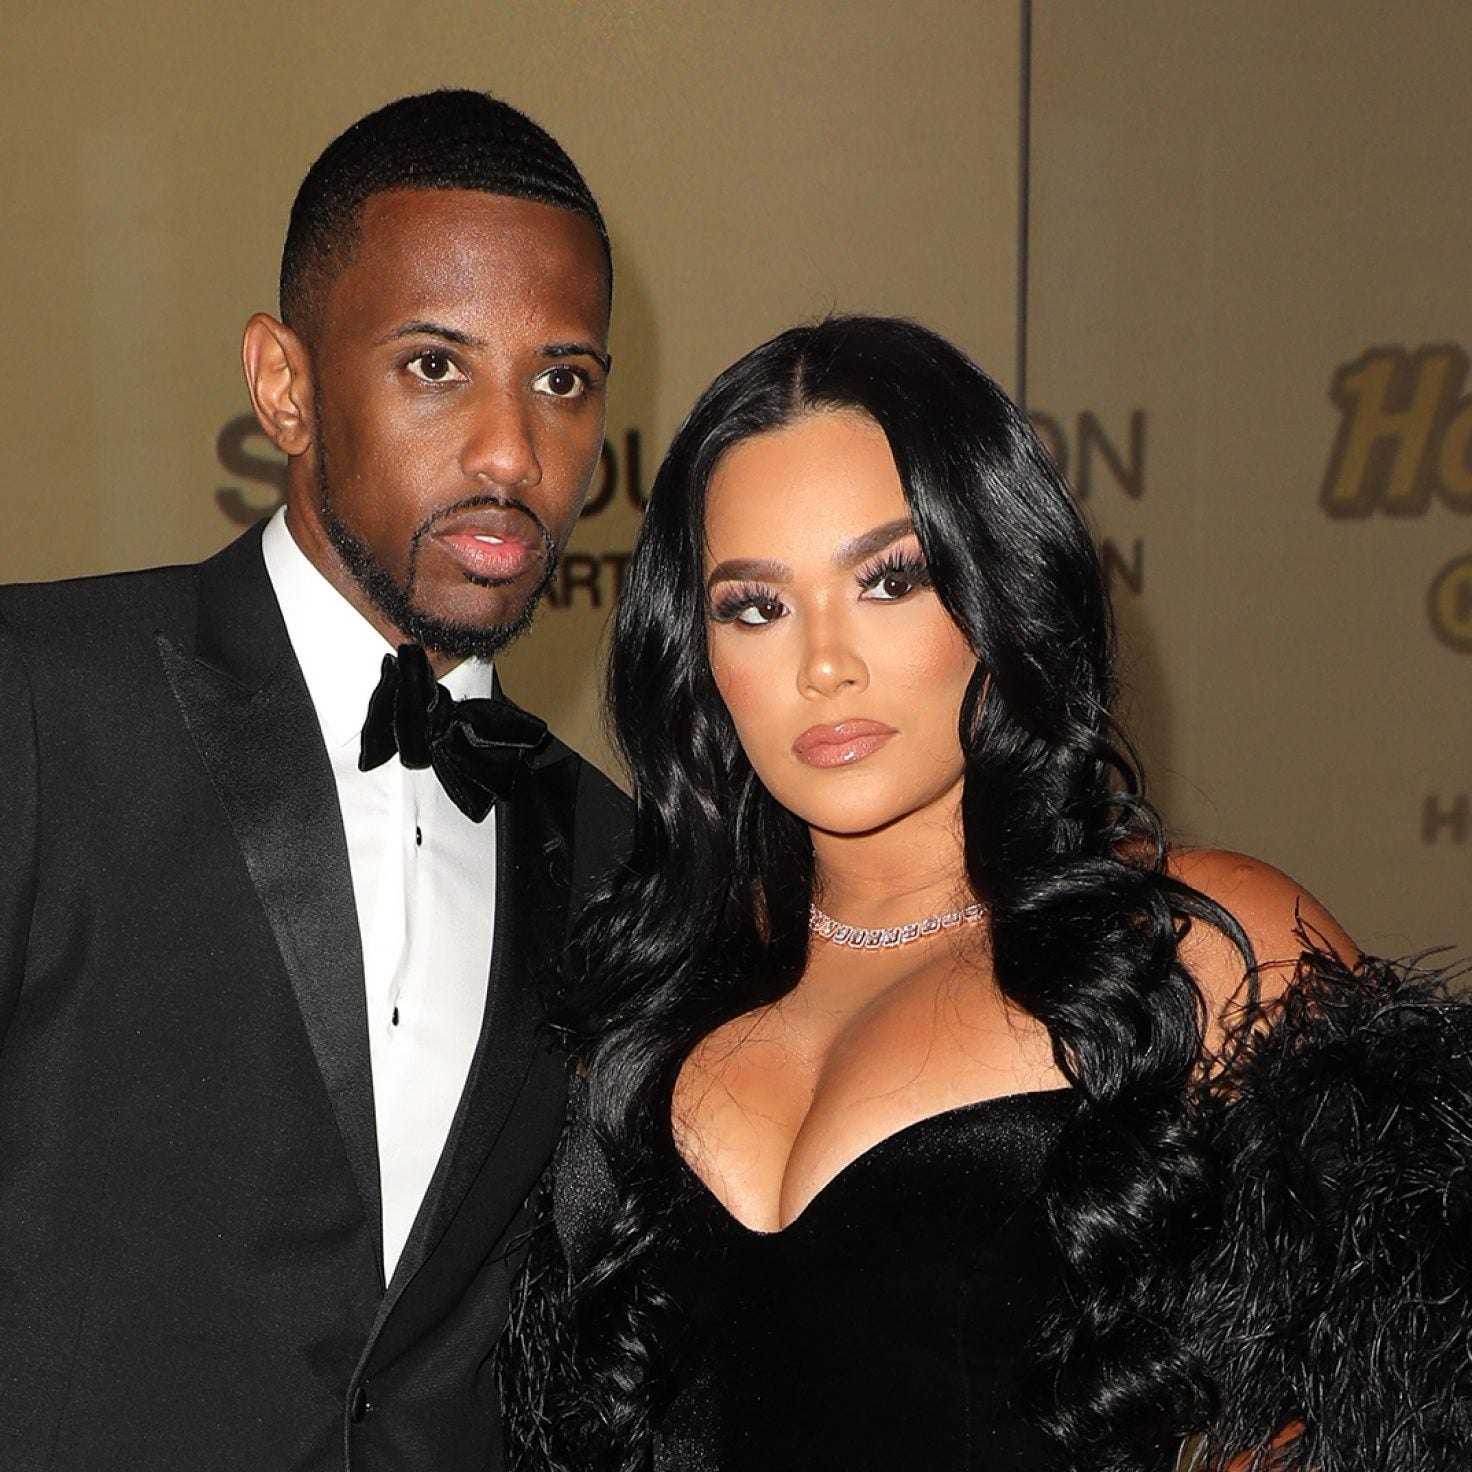 Opinion: The Culture Should Cancel Fabolous, Even If Emily B Won't